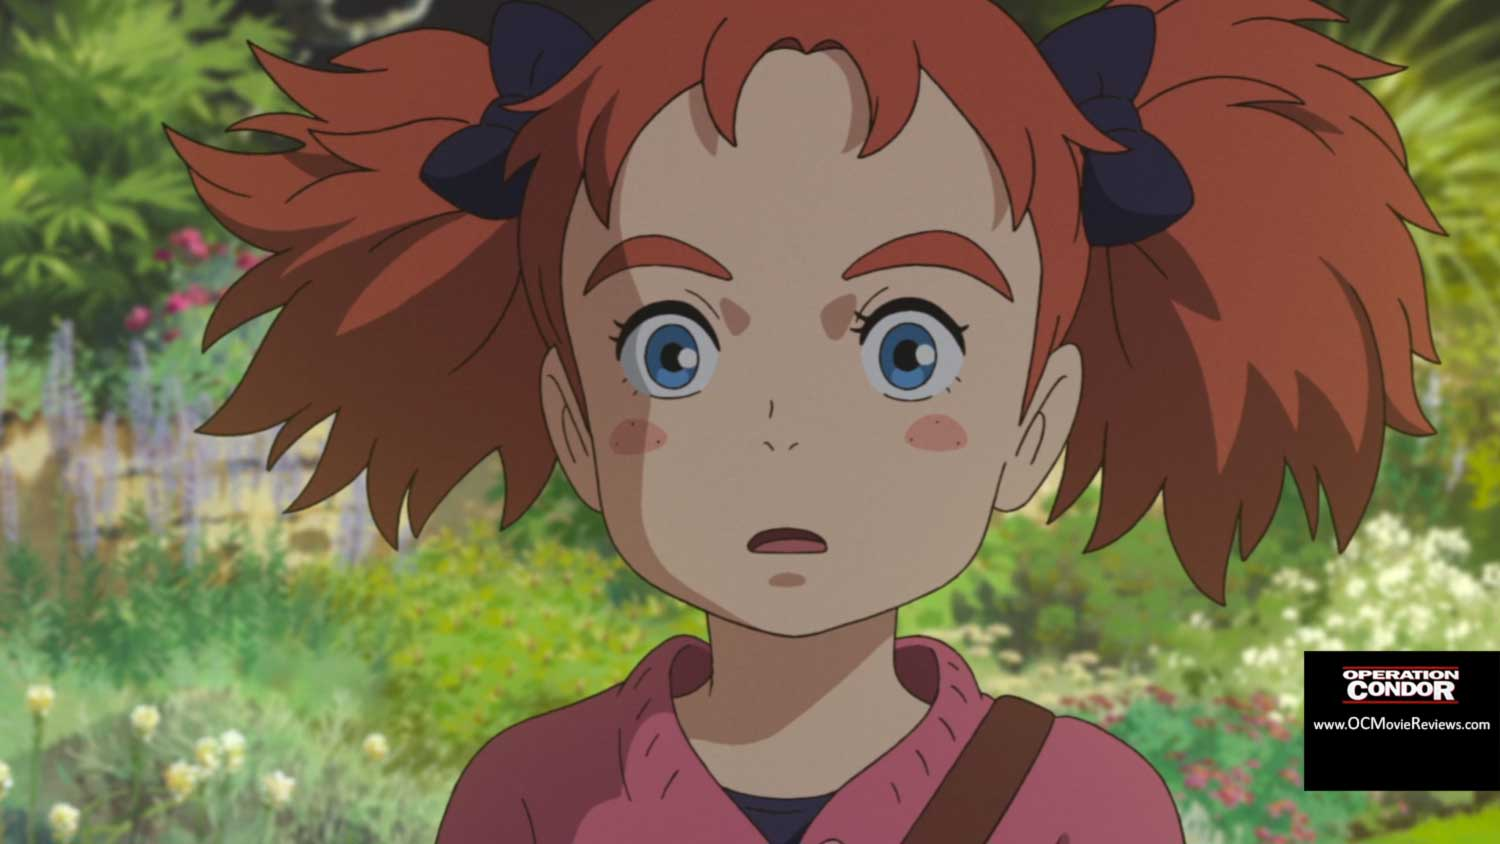 Mary And The Witch's Flower Trailer - OC Movie Reviews - Movie Reviews, Movie News, Documentary Reviews, Short Films, Short Film Reviews, Trailers, Movie Trailers, Interviews, film reviews, film news, hollywood, indie films, documentaries